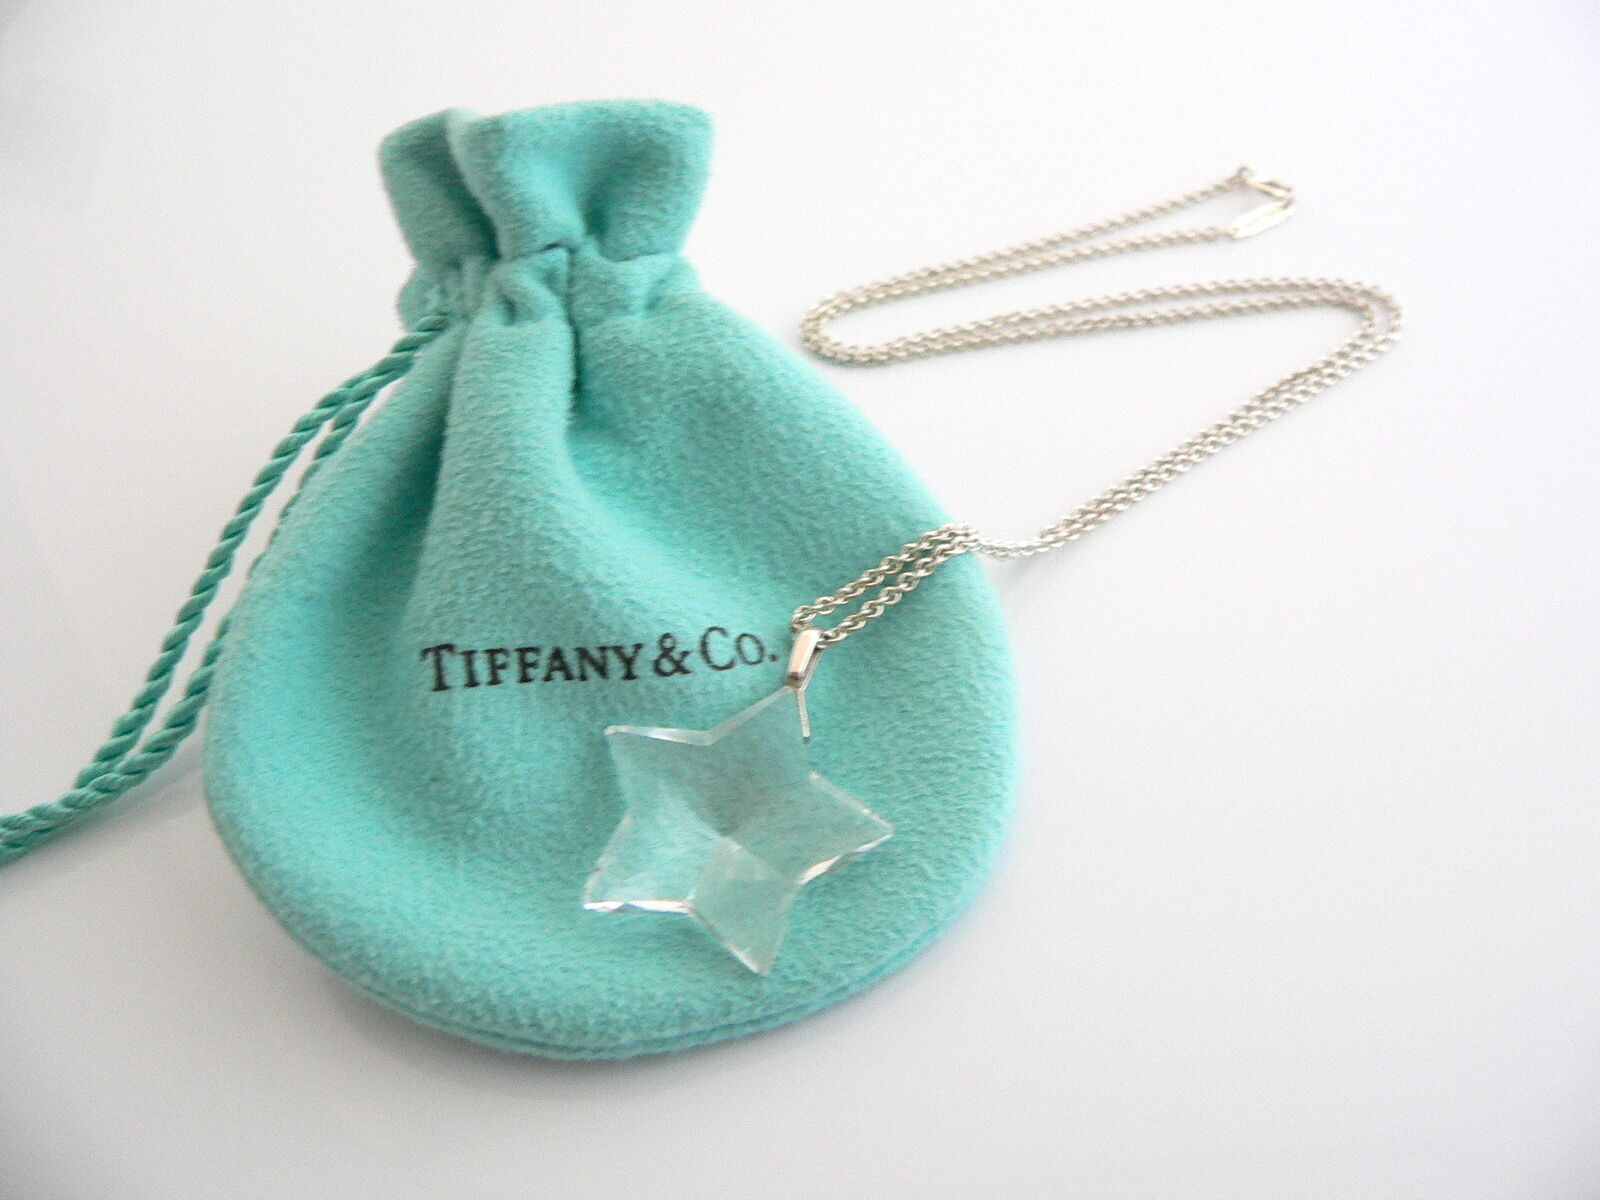 Tiffany & Co Silver Rock Crystal Star Necklace Pendant Chain Gift Pouch Love